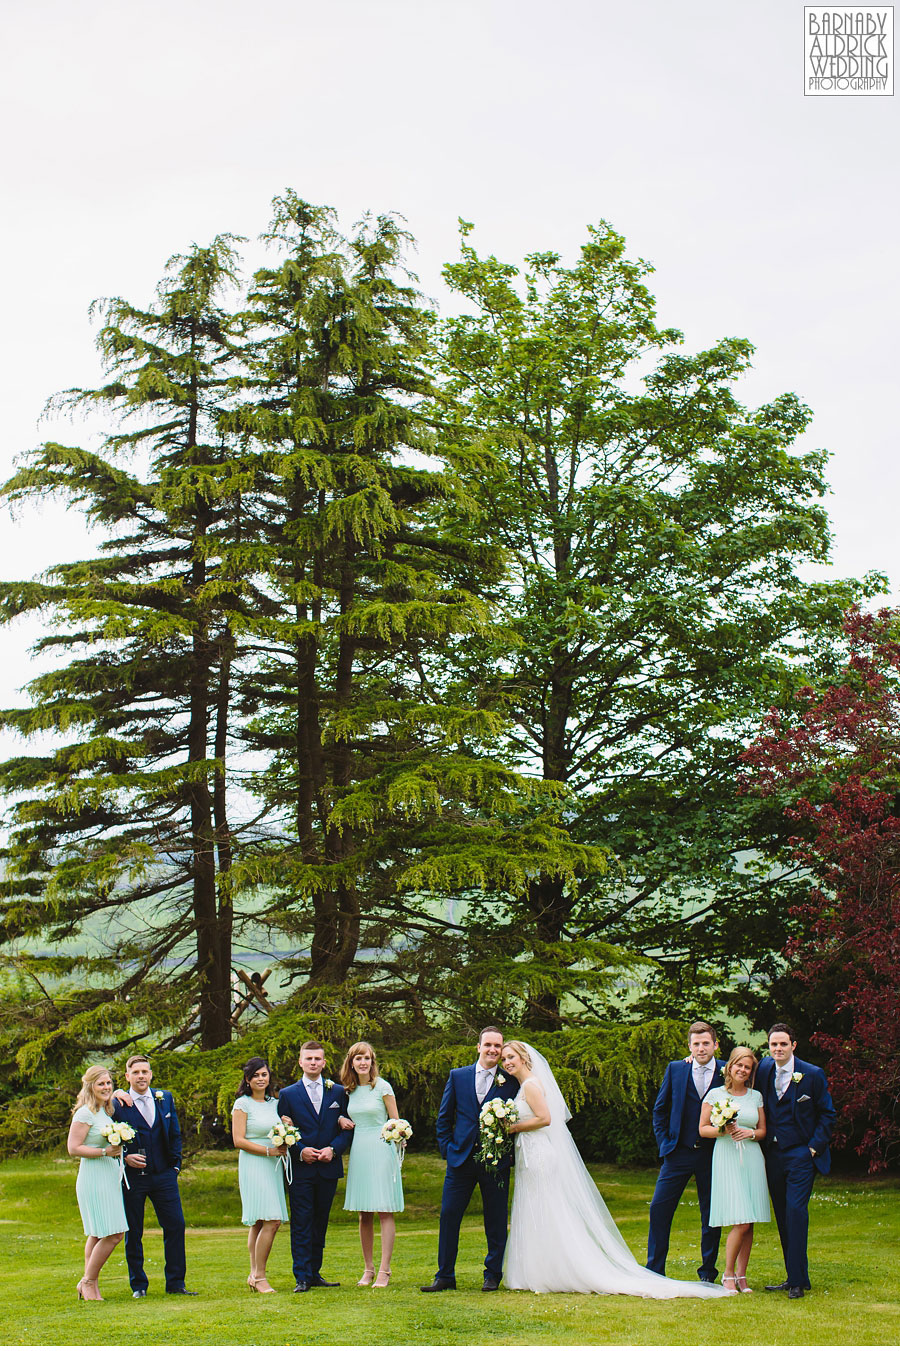 Taitlands Wedding Photography near Settle in The Yorkshire Dales 046